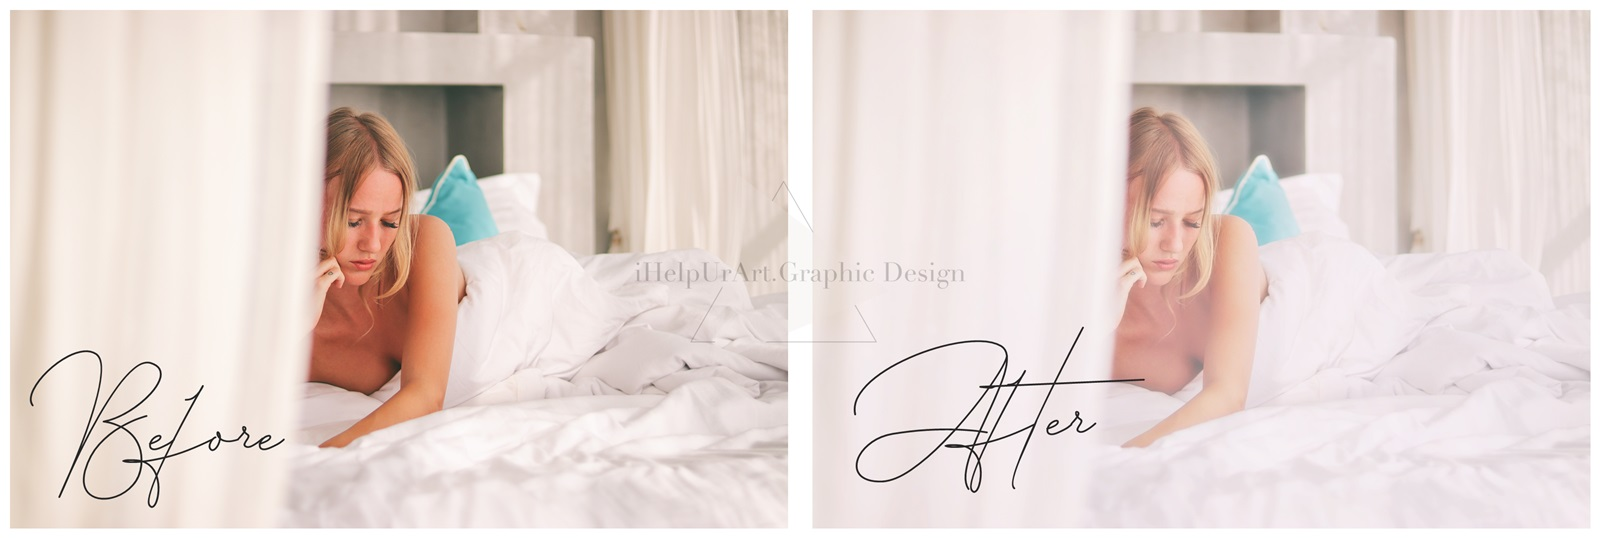 Glowing Photo Overlays - Fog Clipart example image 2